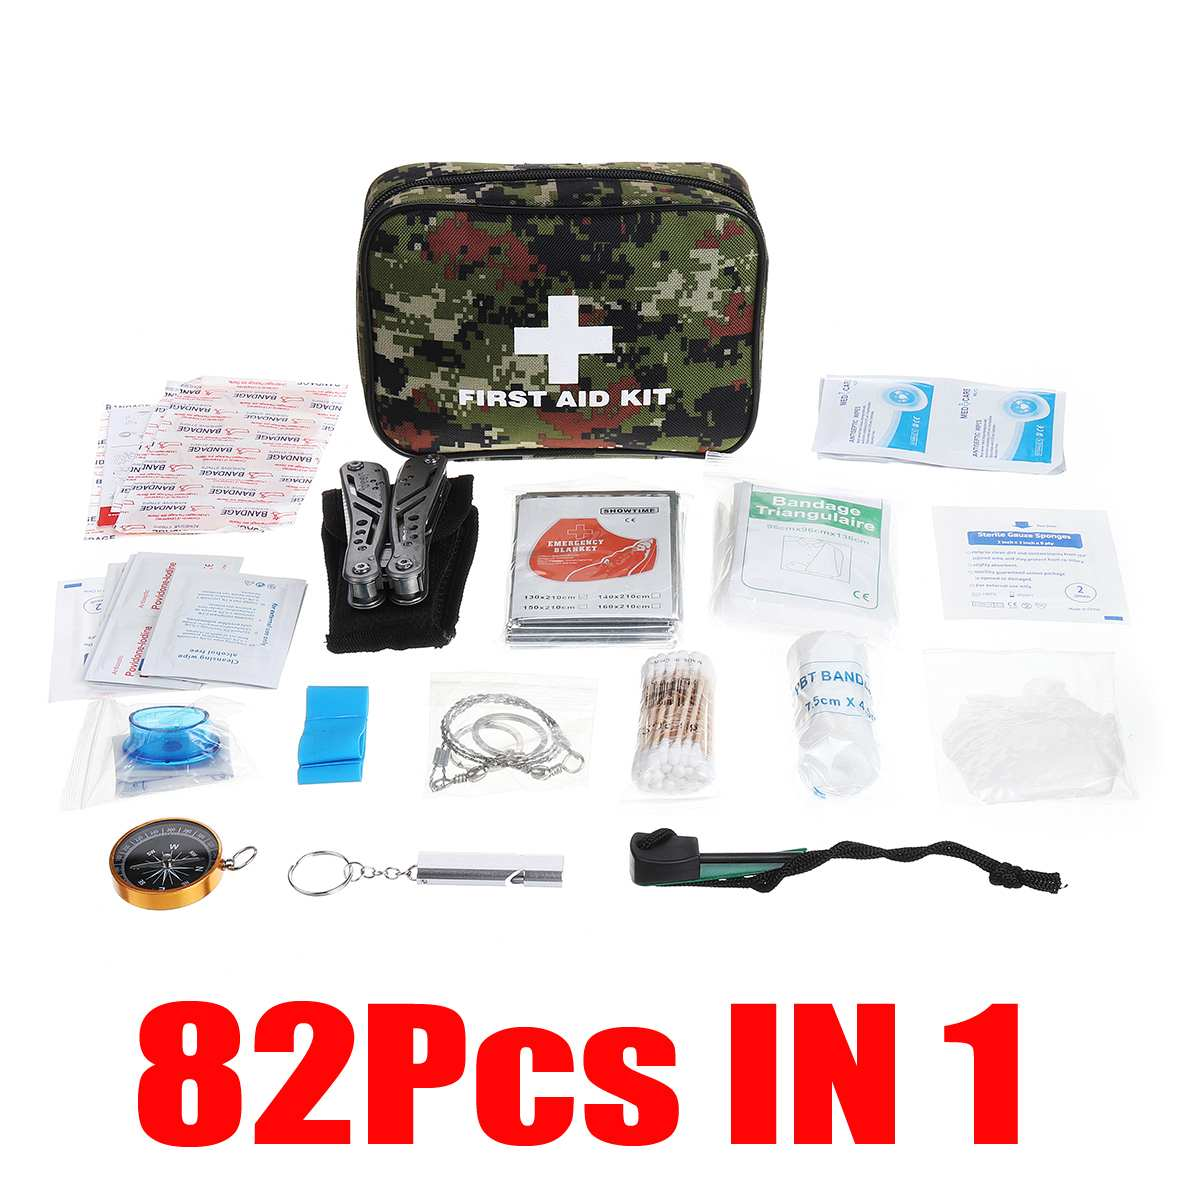 82PIECES IN 1 First Aid Kit For Medicines Outdoor SOS Emergency Survival Kit For Home Office Camping